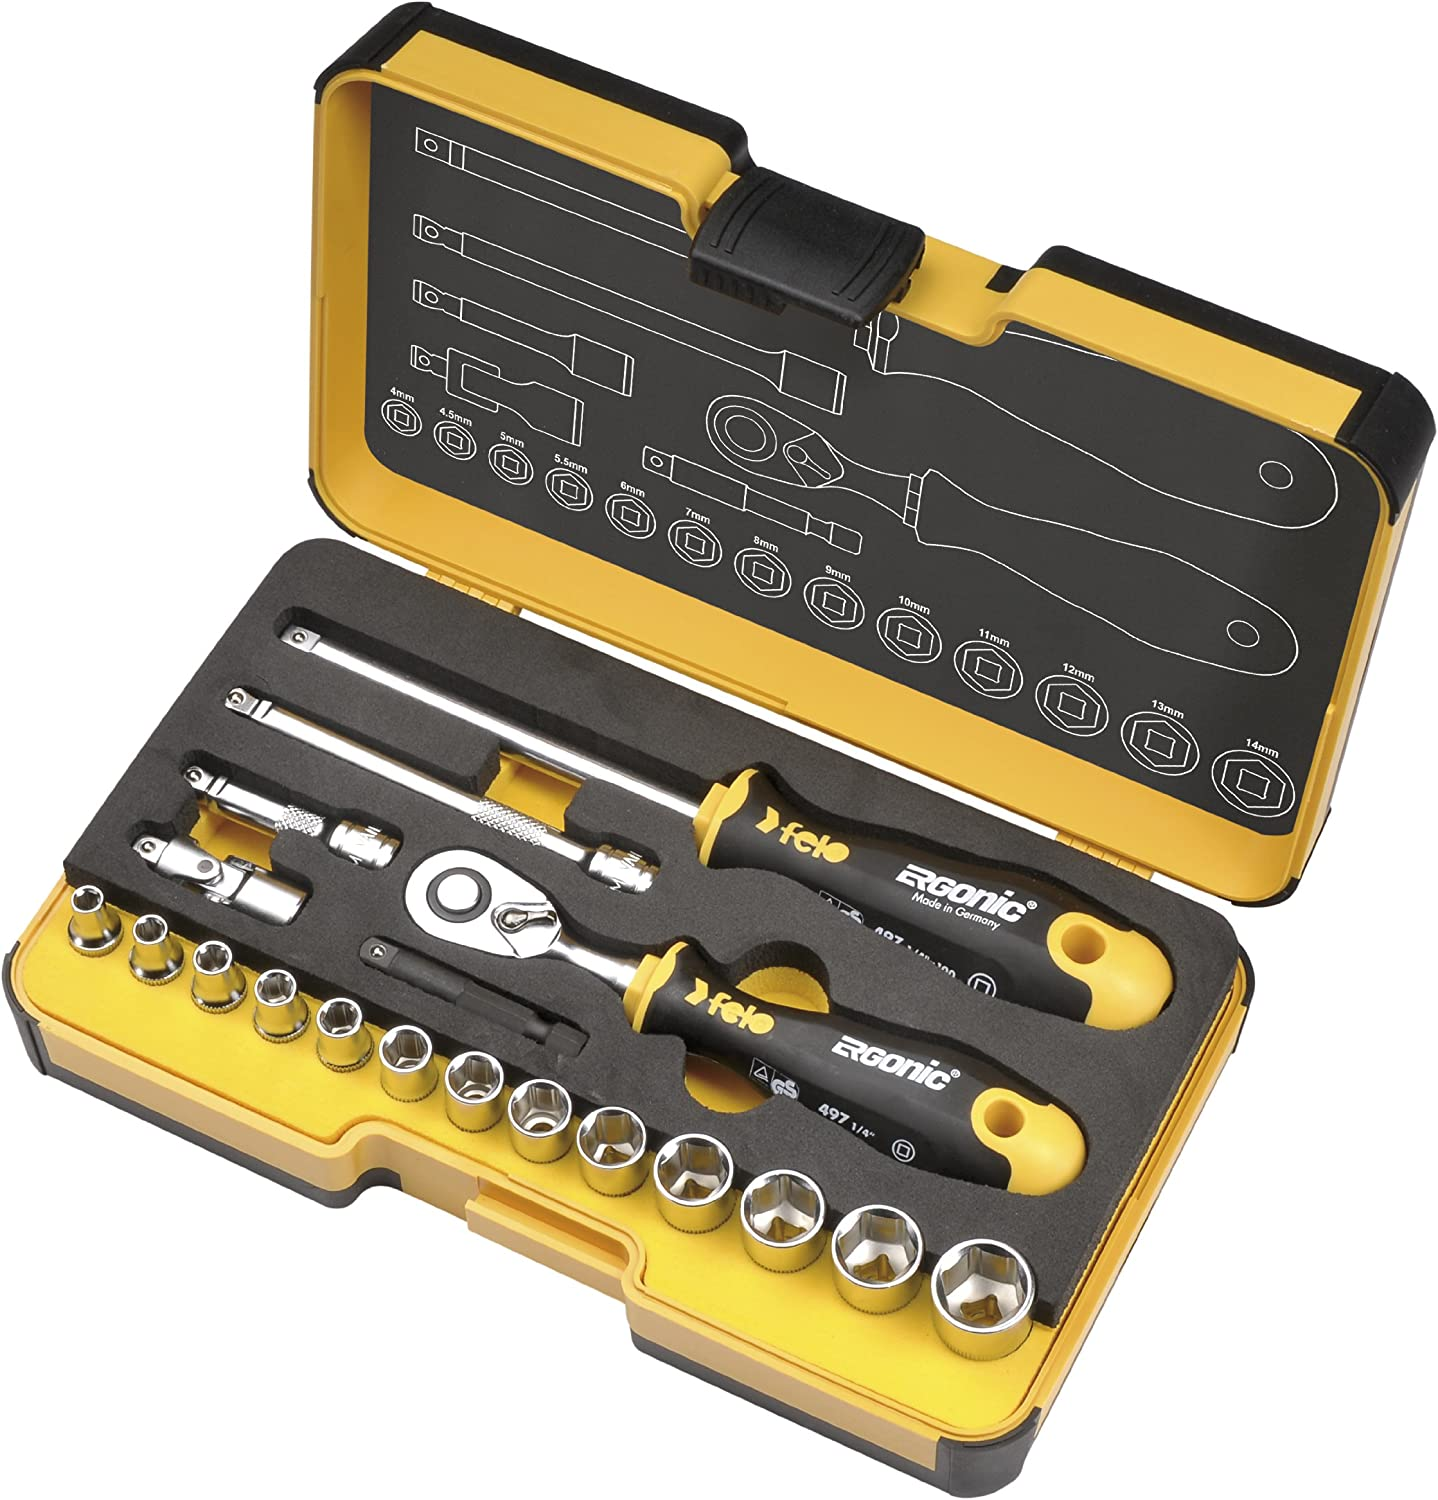 Felo R-GO 19 Challenge the lowest price of Japan ☆ 05781906 Tool OFFicial Set 19-Piece